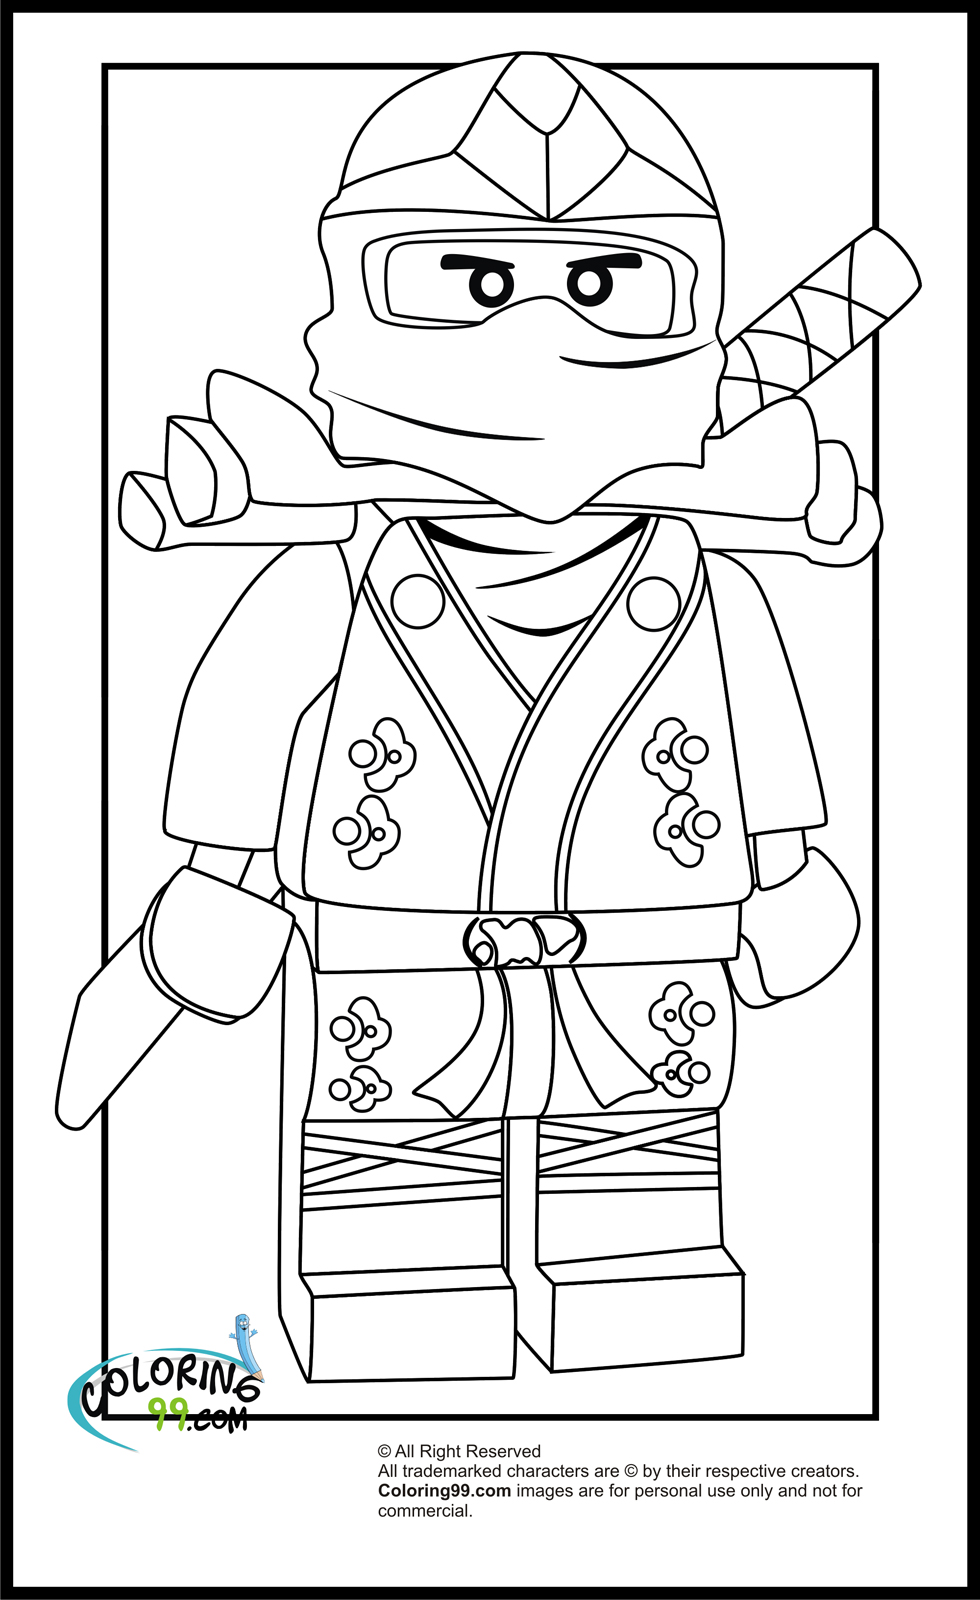 pictures of lego ninjago lego ninjago coloring pages best coloring pages for kids of ninjago lego pictures